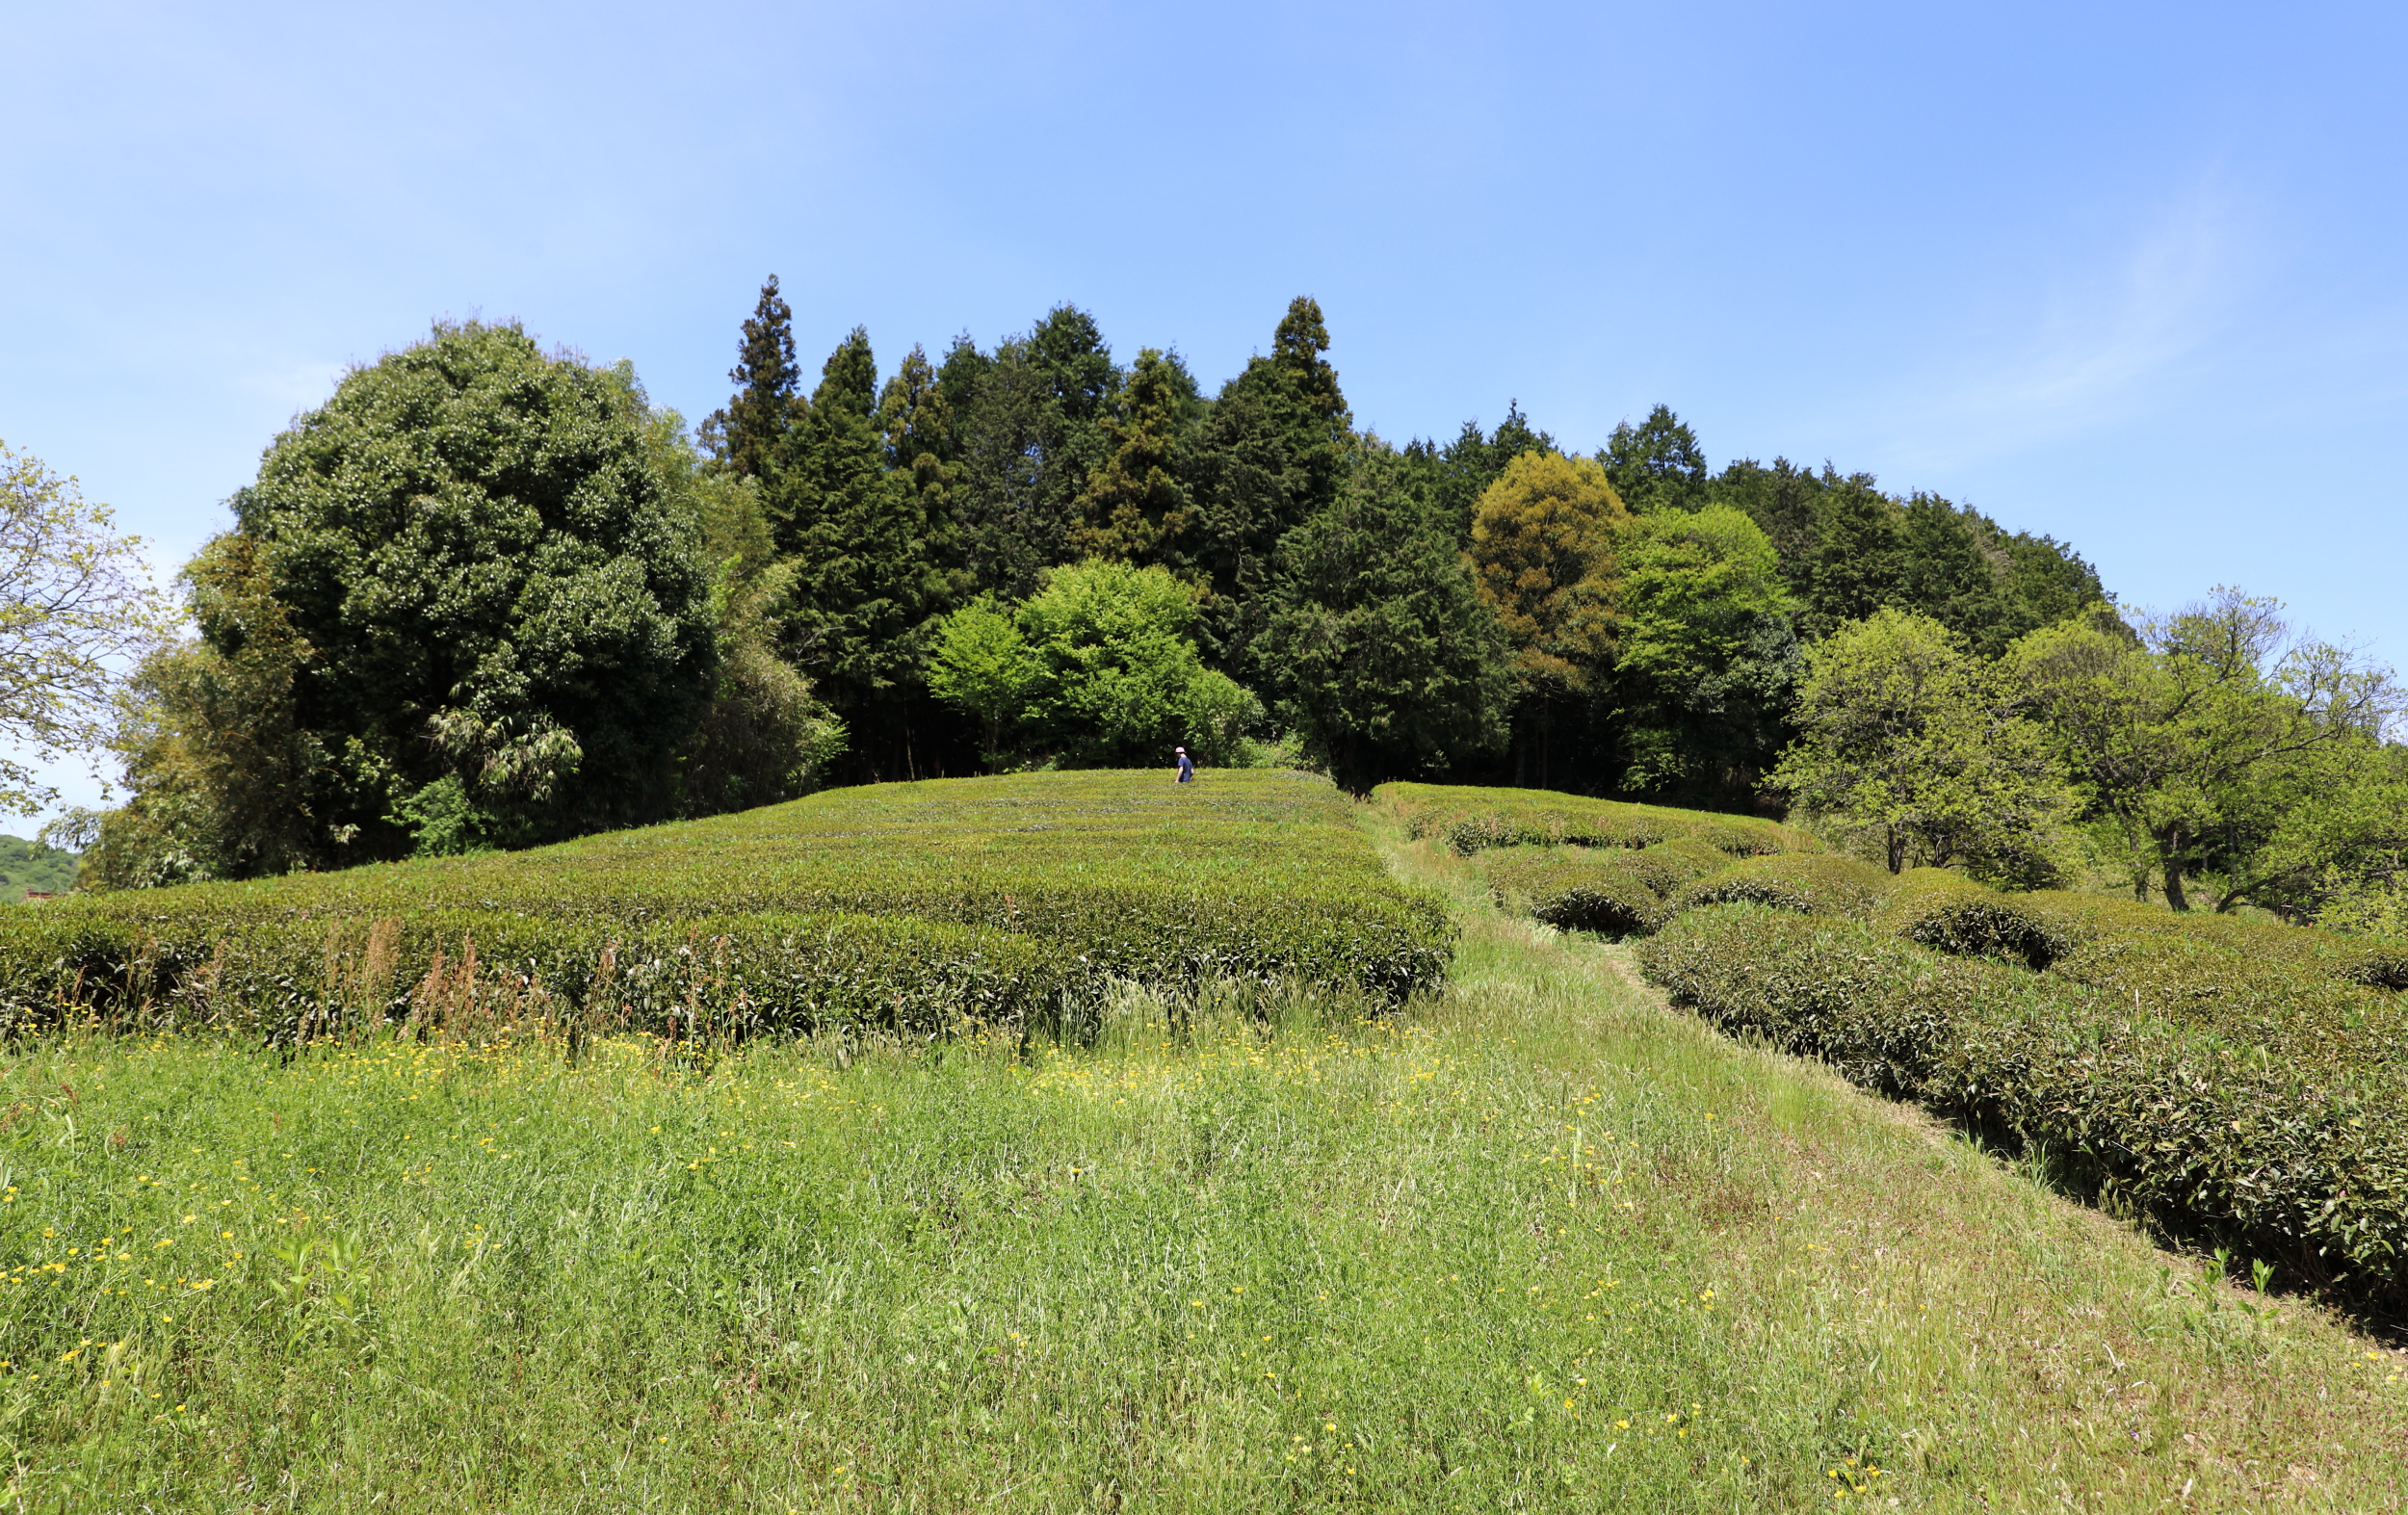 Standing in the middle distance of his tea farm, Genki has created an idyllic landscape—a perfect example of satoyama, which is an expression used in Japan to describe the concept of man existing in harmony with the mountains. It means that a way of life and the environment have been shaped by both man and nature over time to support a mutually beneficial existence.